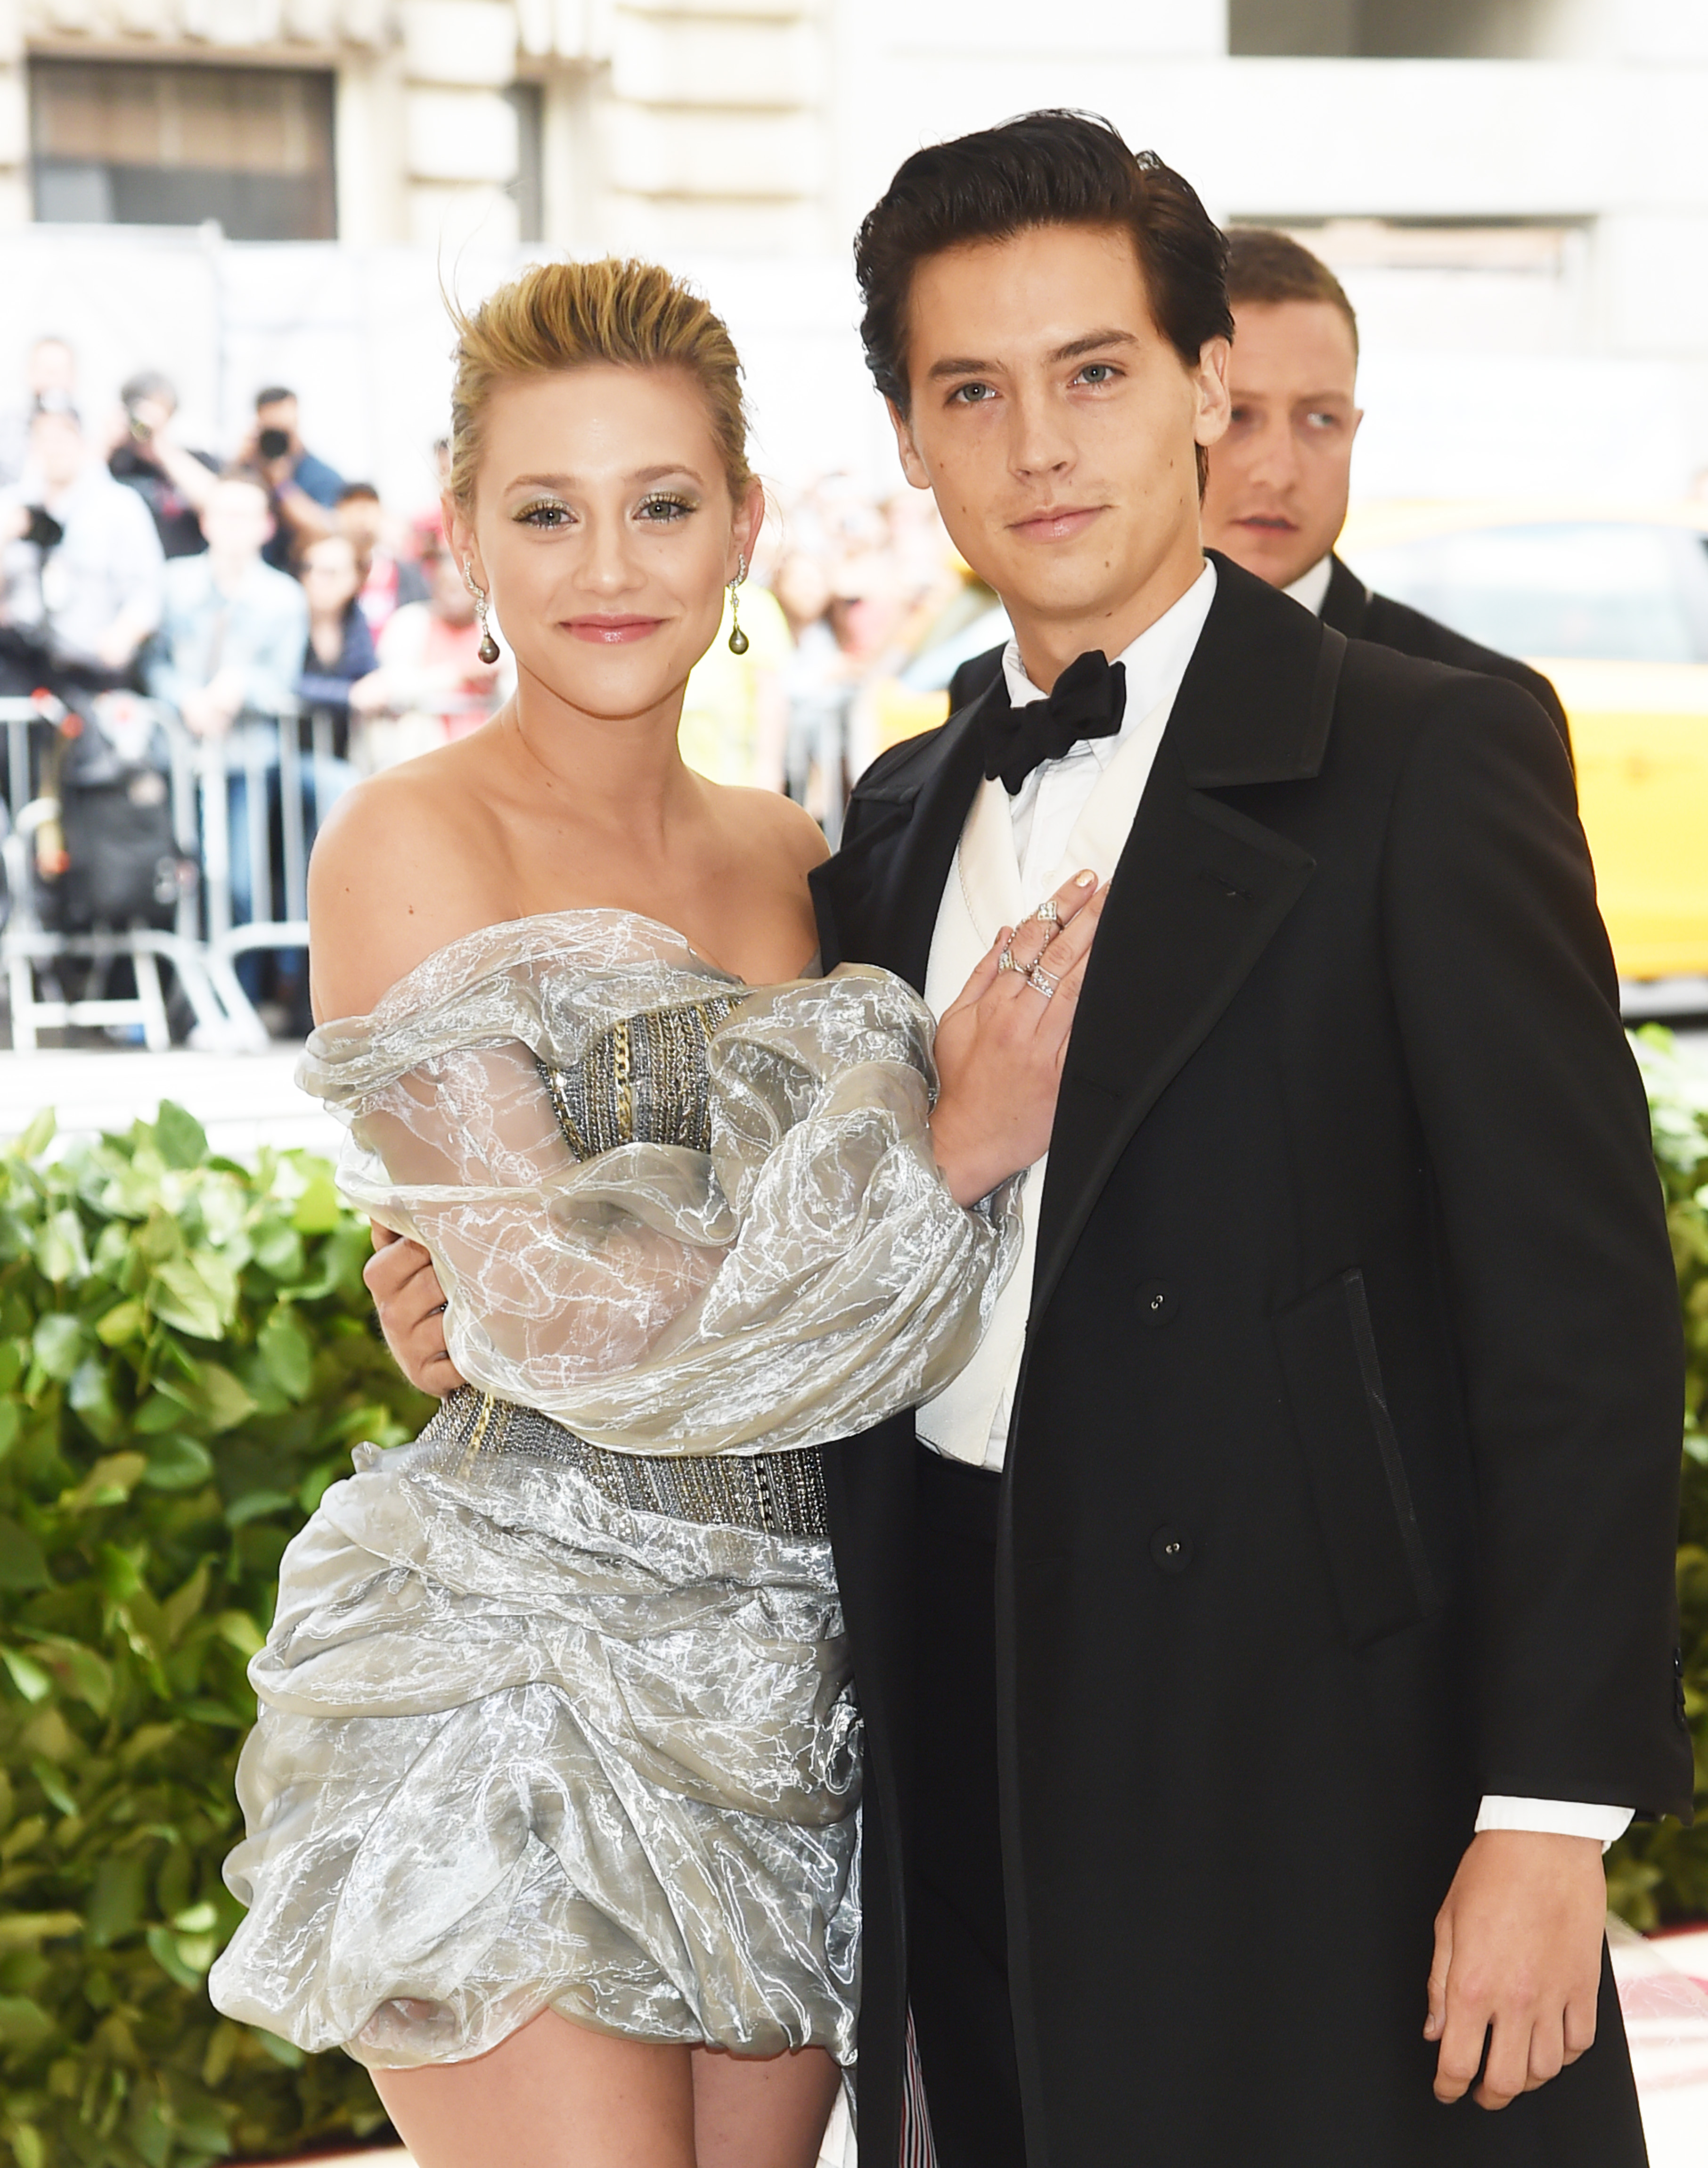 Lili Reinhart and Cole Sprouse attend the Heavenly Bodies: Fashion & The Catholic Imagination Costume Institute Gala at The Metropolitan Museum of Art on May 7, 2018 in New York City.